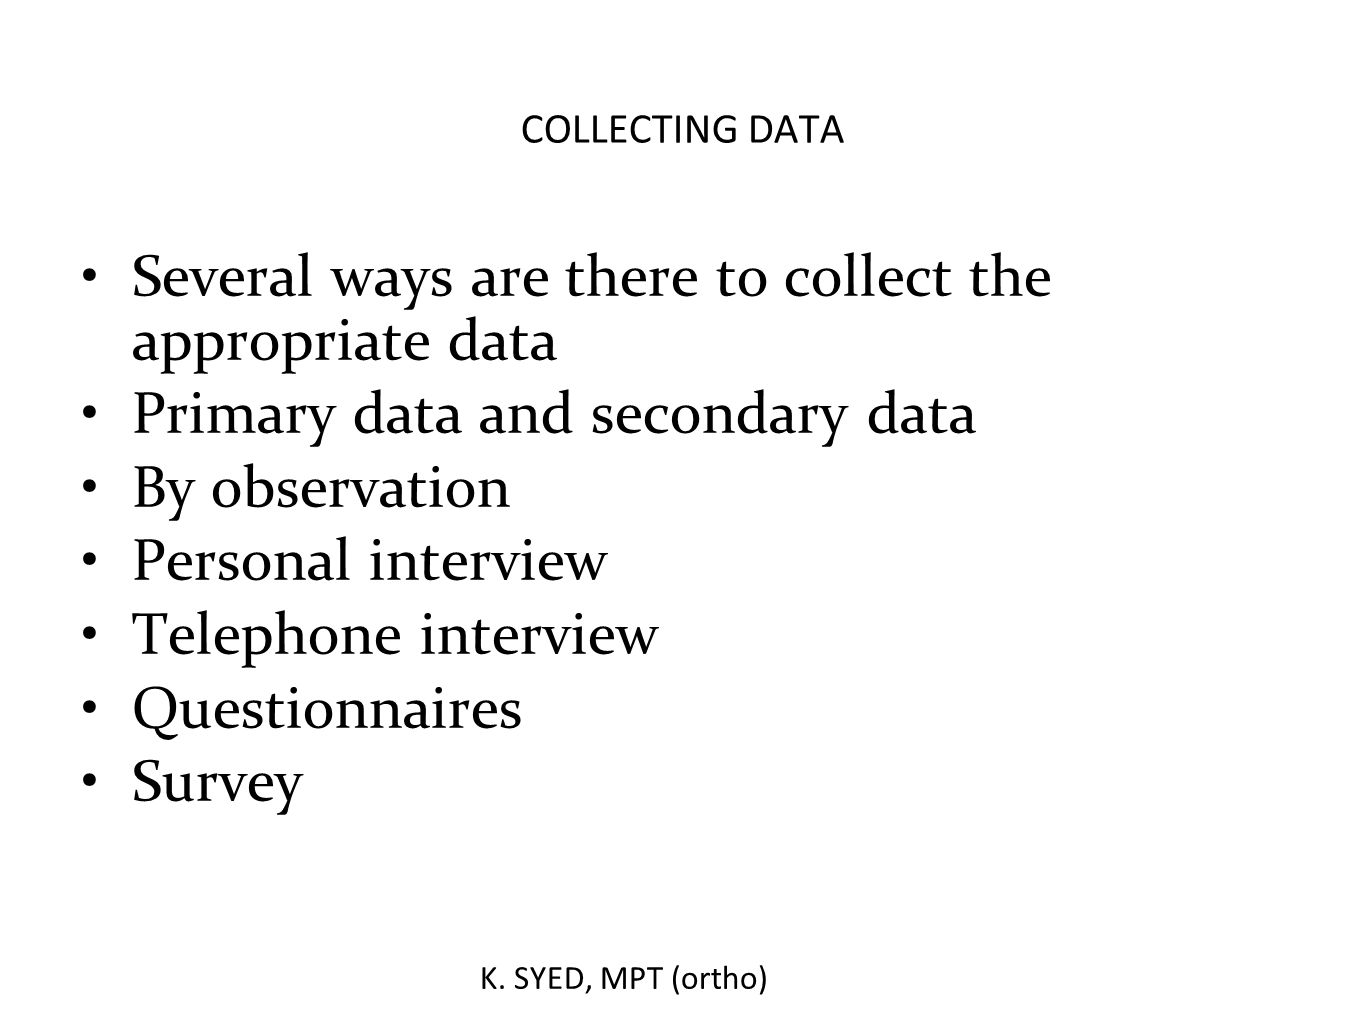 Several ways are there to collect the appropriate data